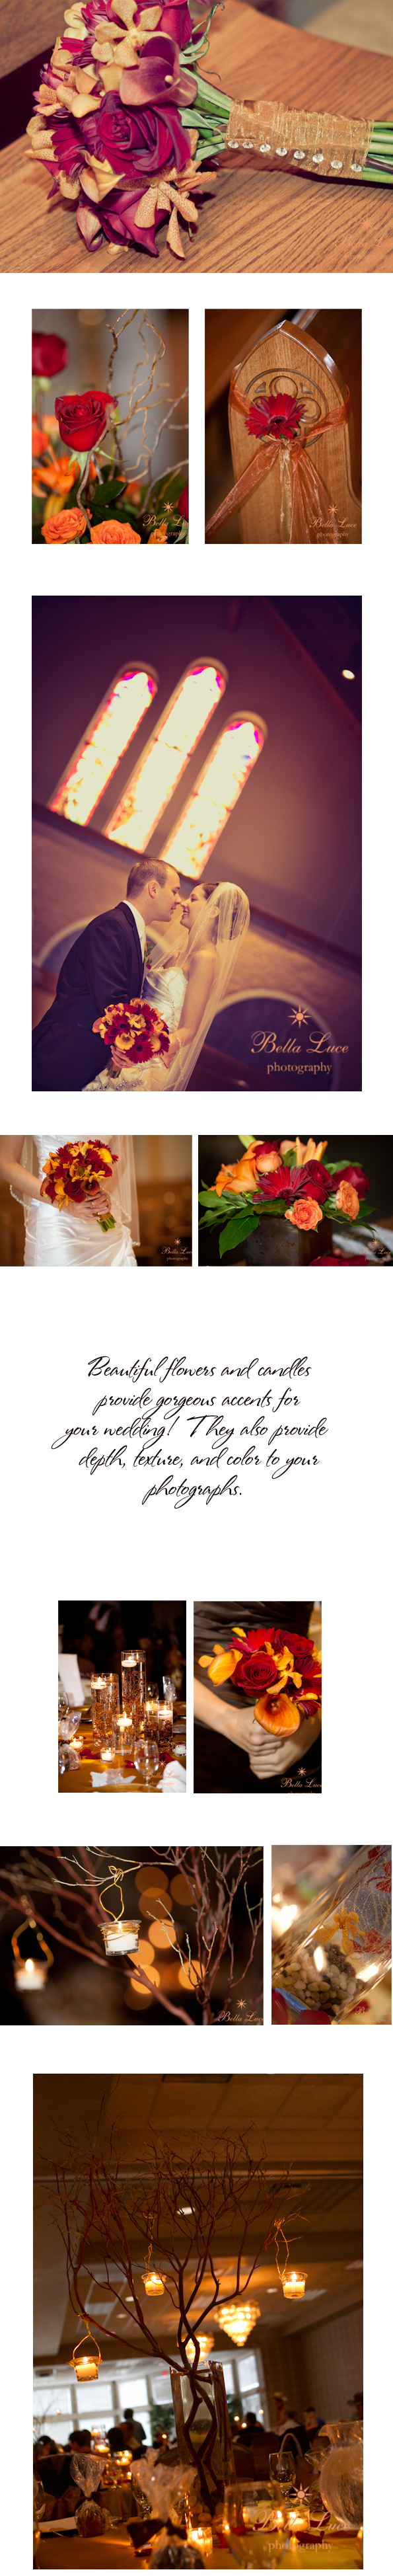 Wedding Flowers and Candles